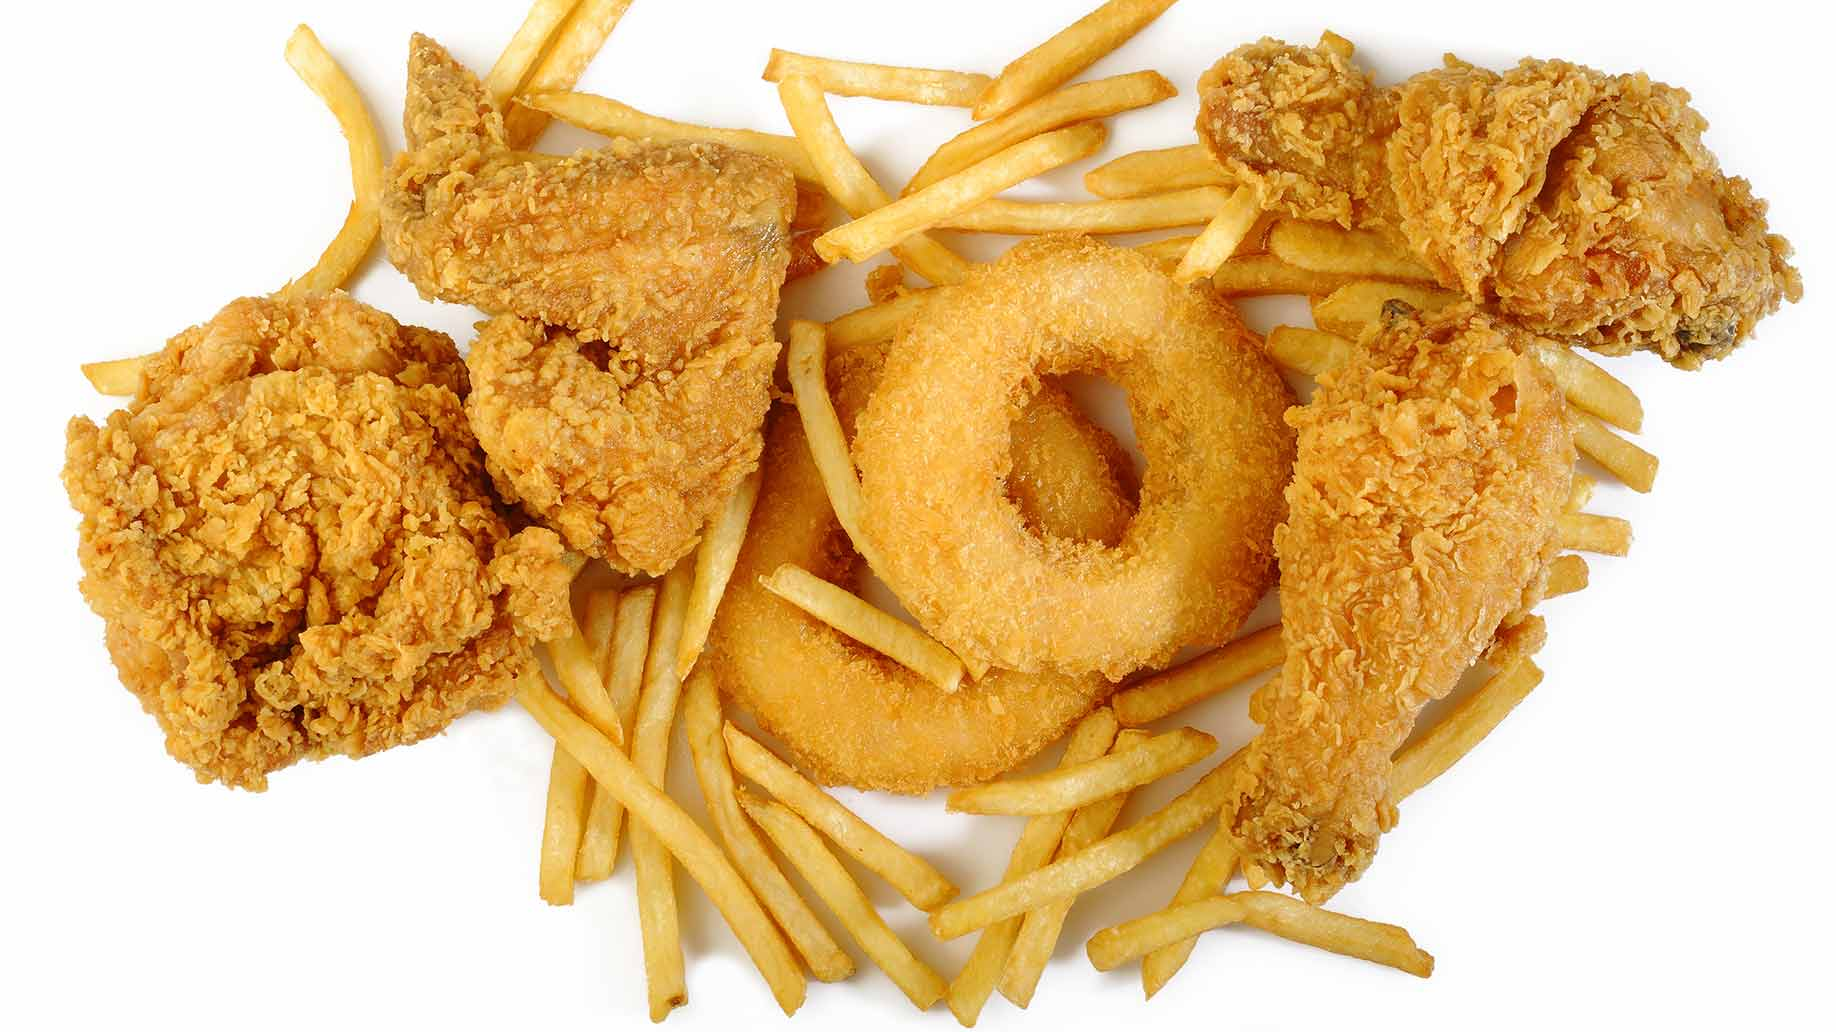 fried unhealthy oily processed food